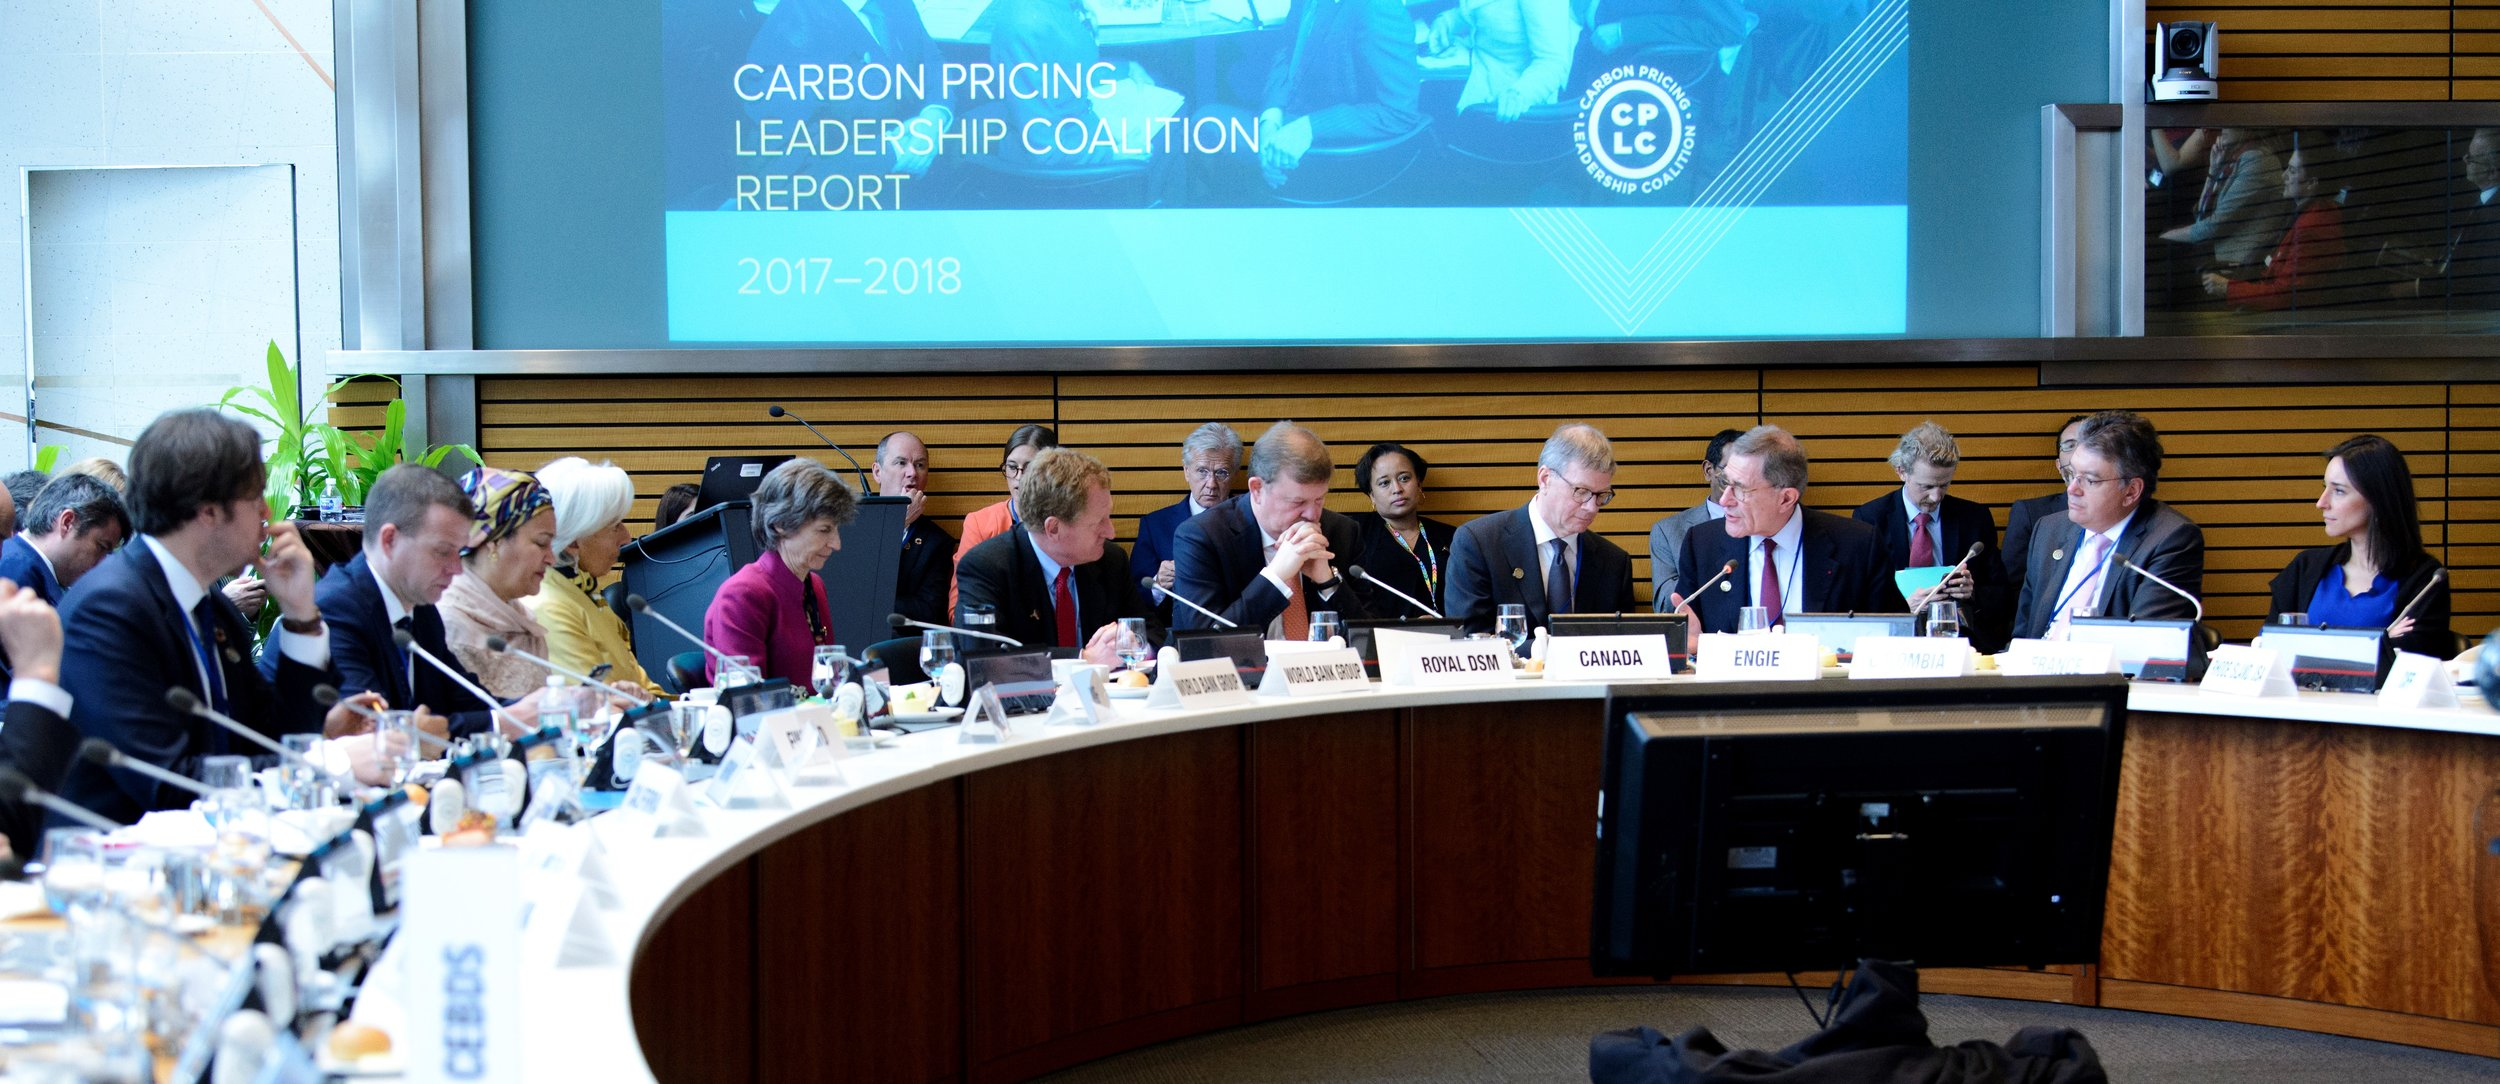 Leaders from government, private sector, and civil society organizations gather for CPLC's 3rd High-Level Assembly on April 19, 2018 to take stock of global carbon pricing developments over the past year and chart a way forward.